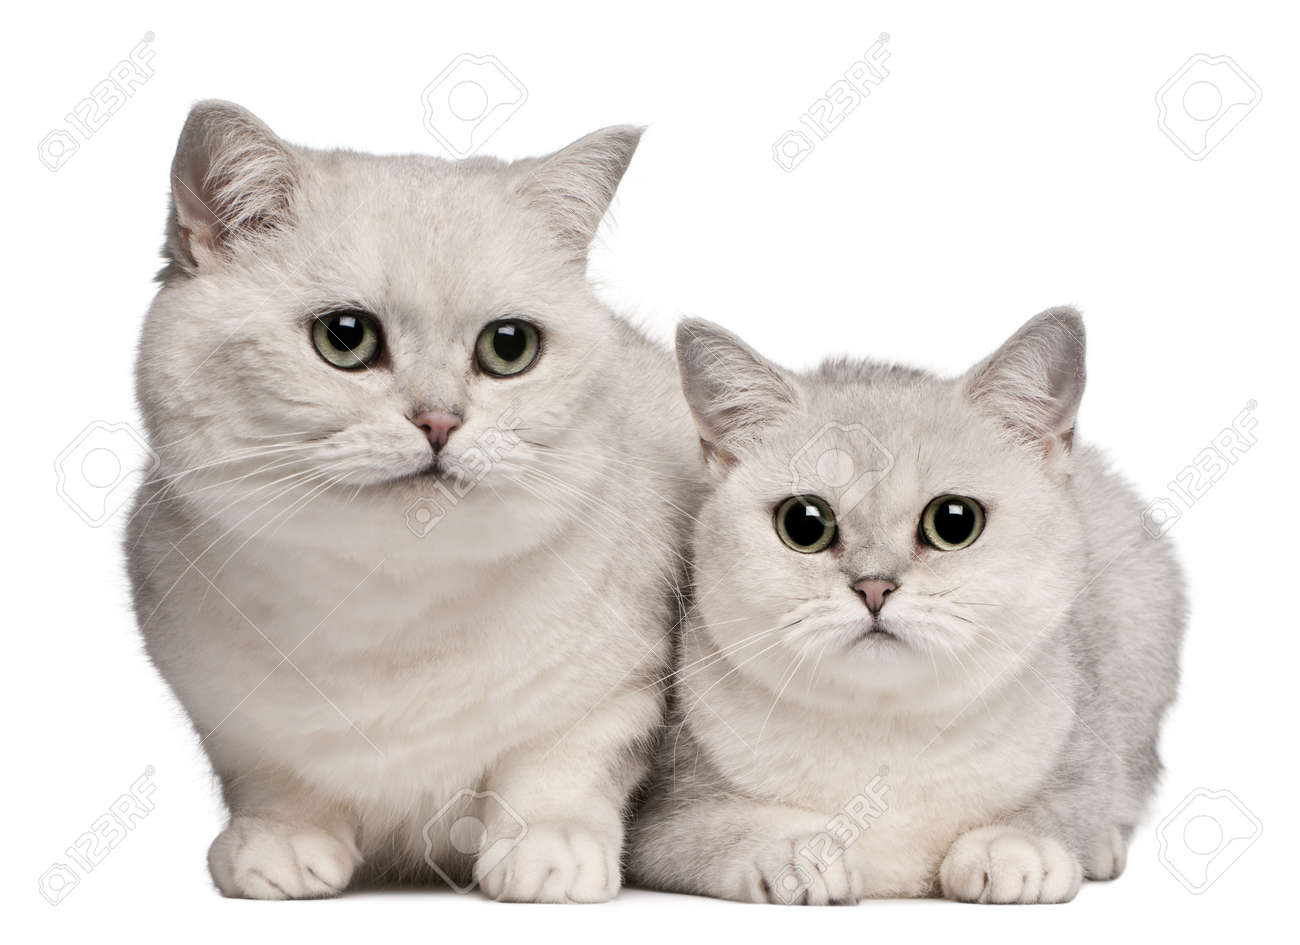 British Shorthair Cats 1 And 6 Years Old In Front White